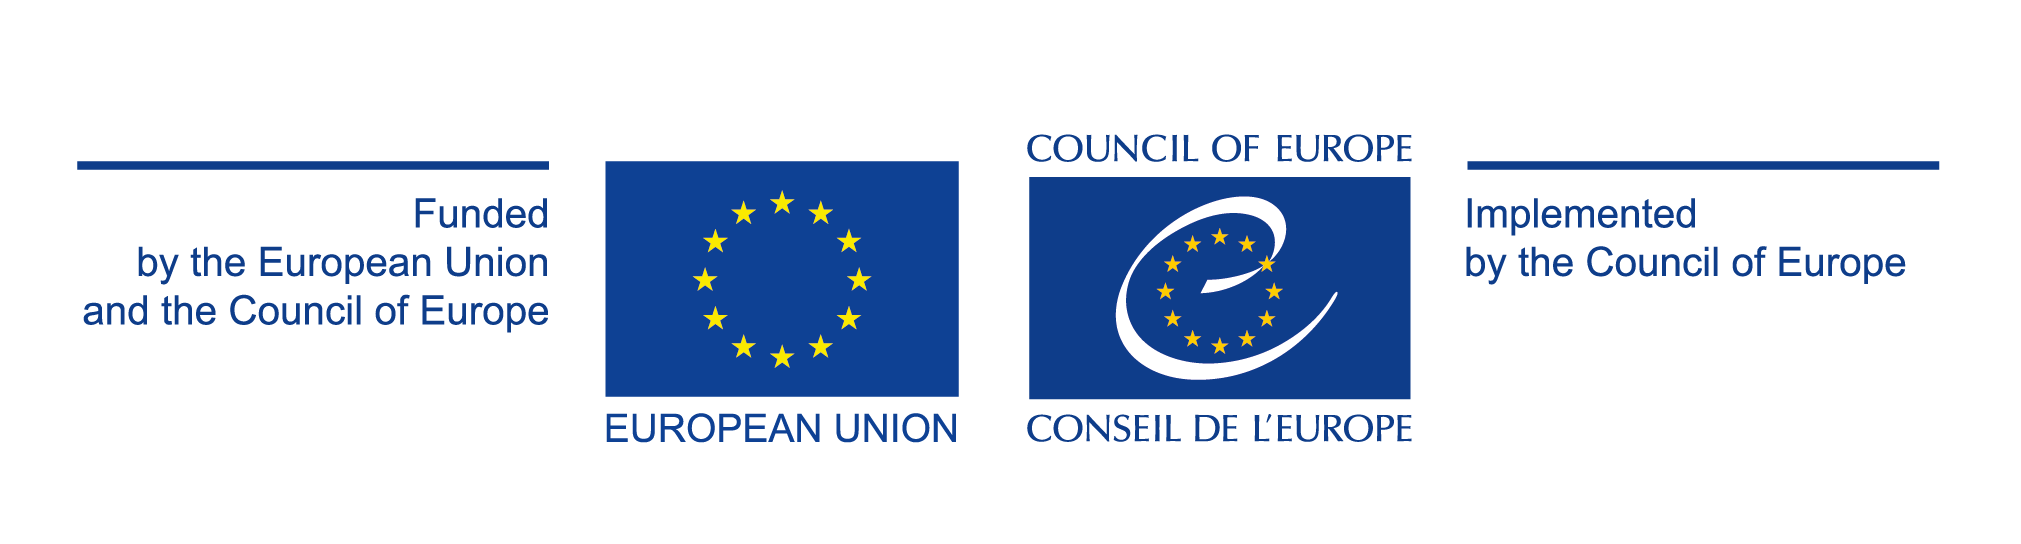 Funded-EU-and-COE-Implemented-COE-quadri-EN.png